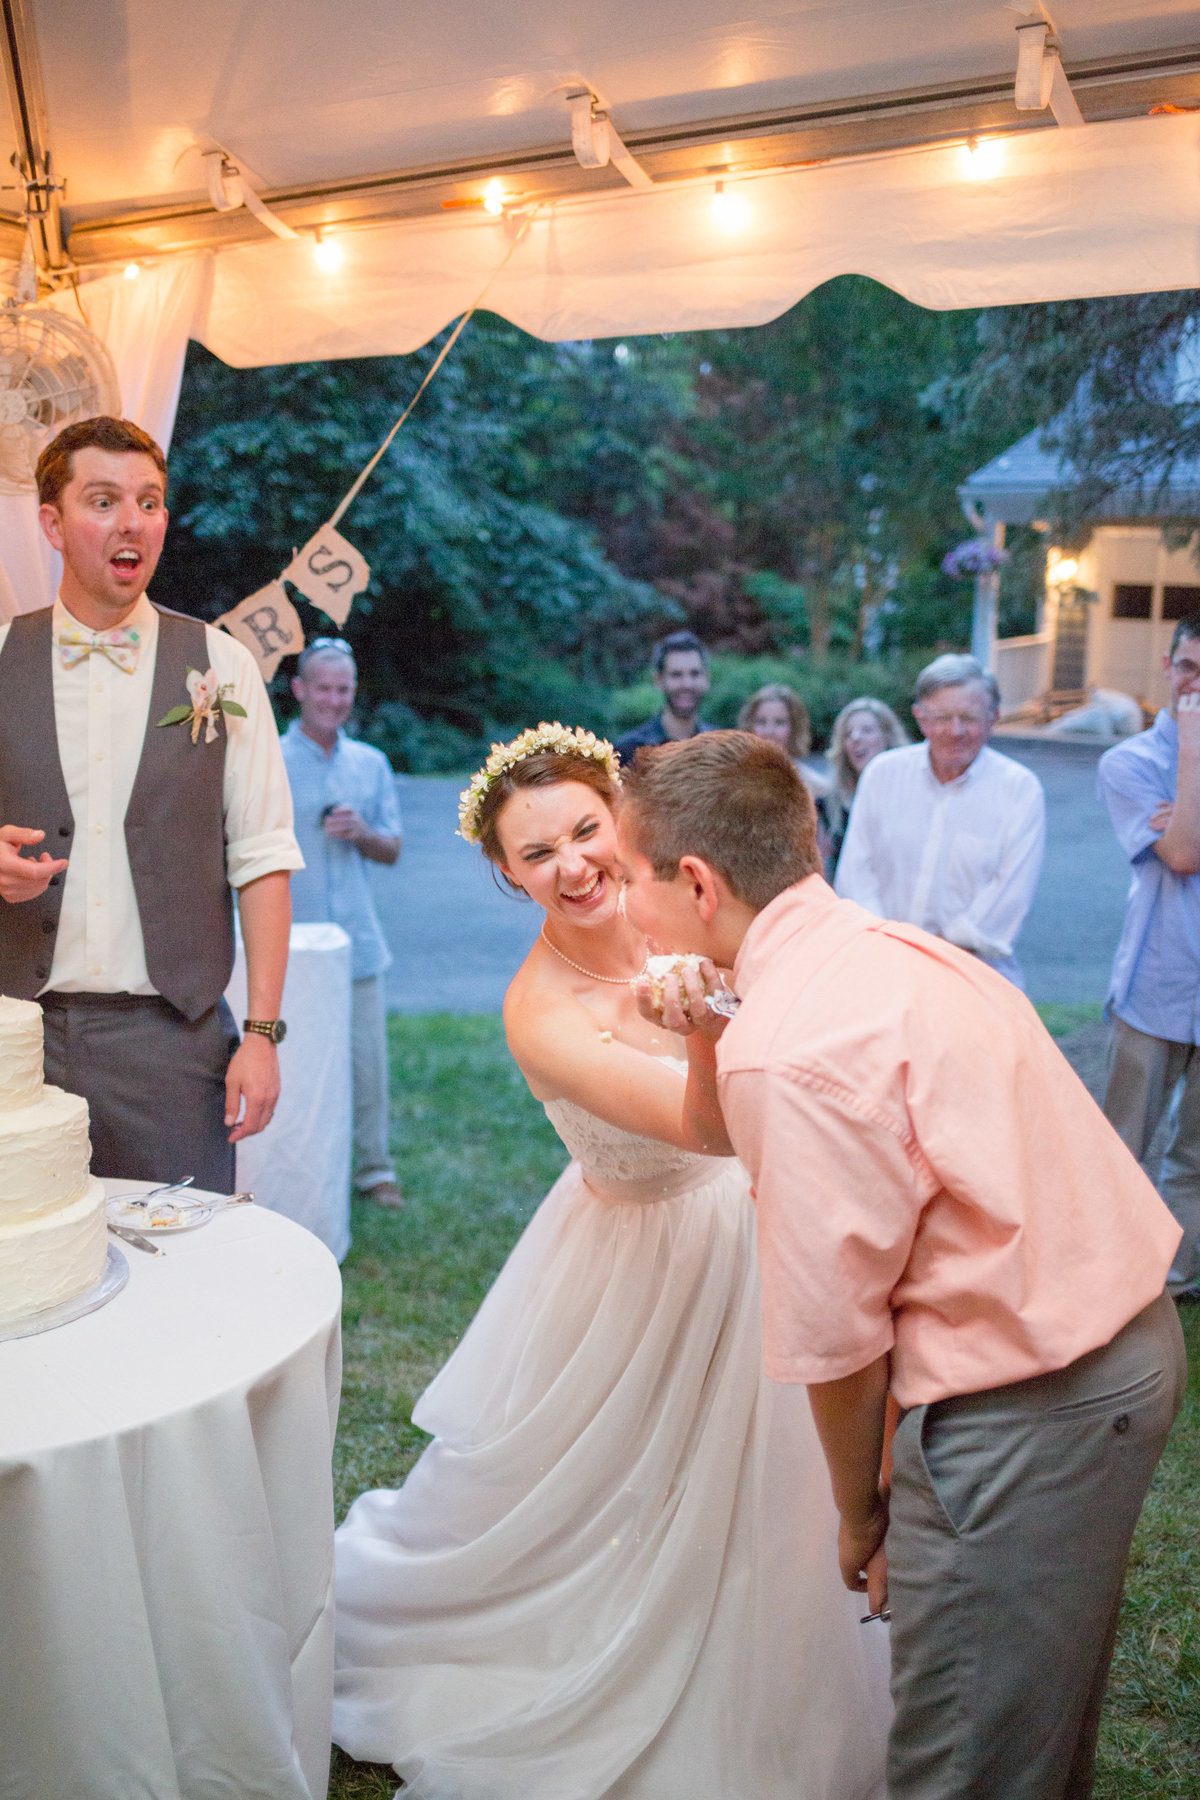 AlisonandJohnWedding-CakeCutting-21